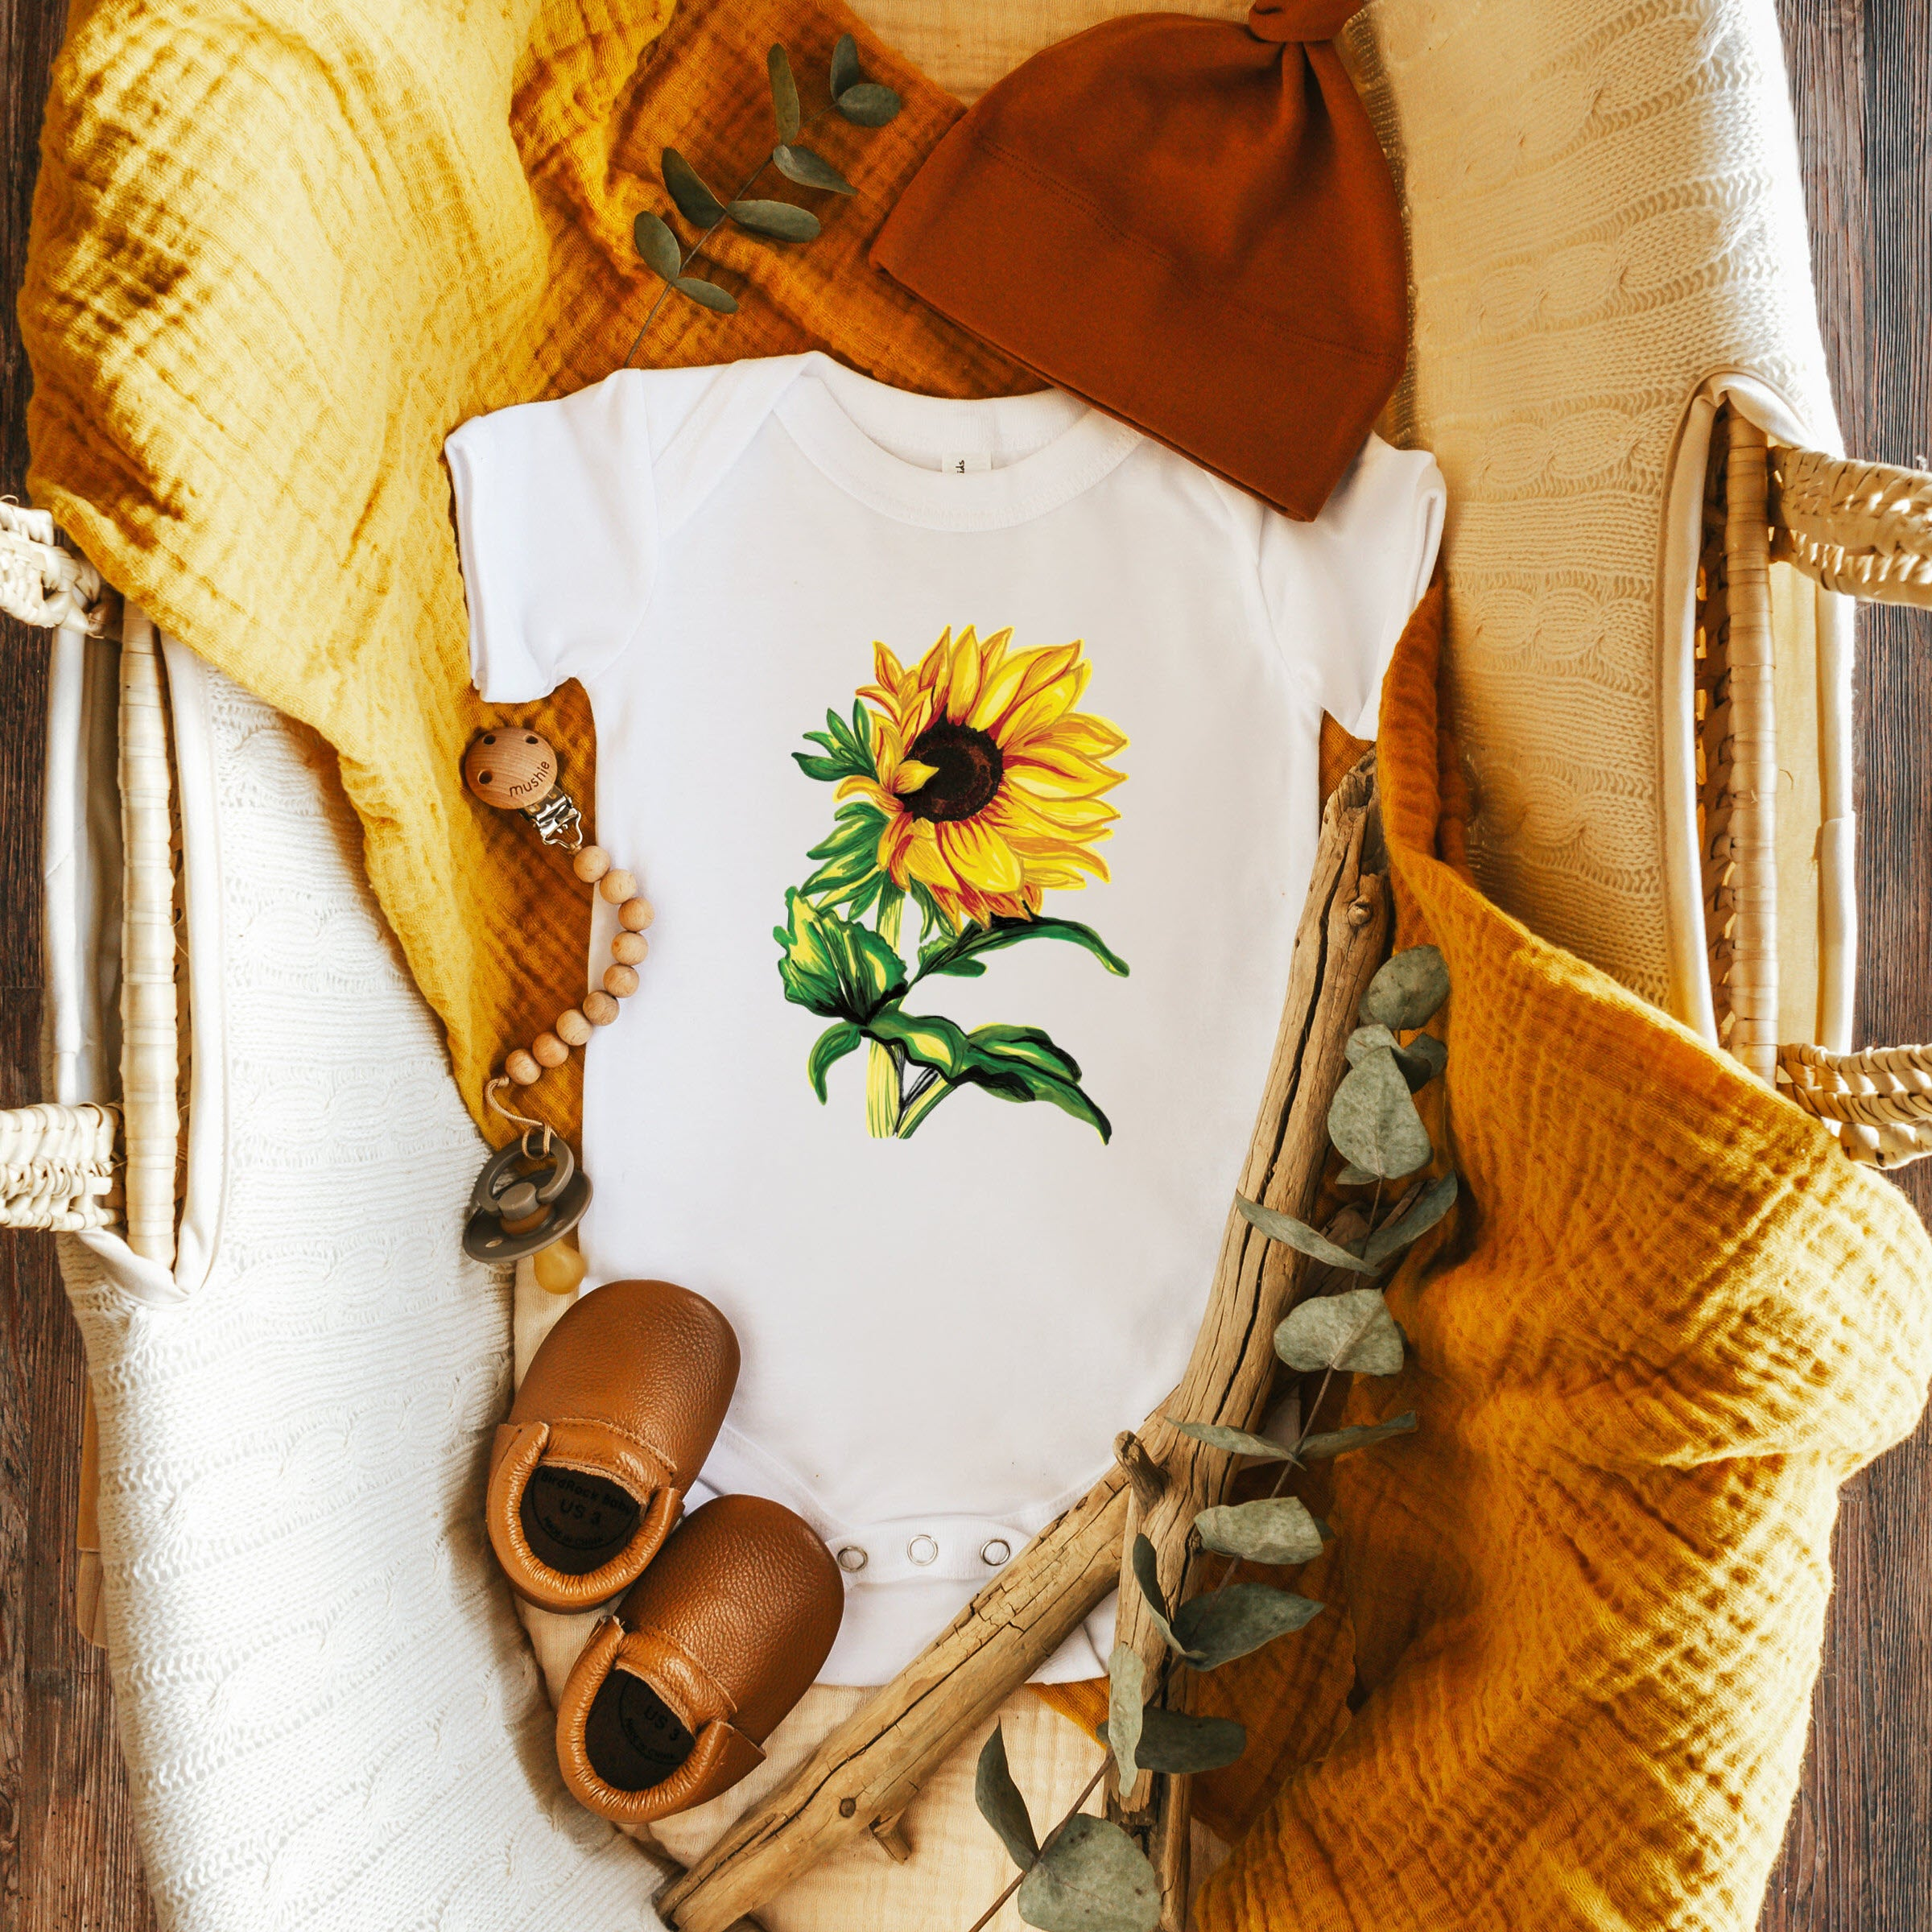 White baby bodysuit printed with a sunflower